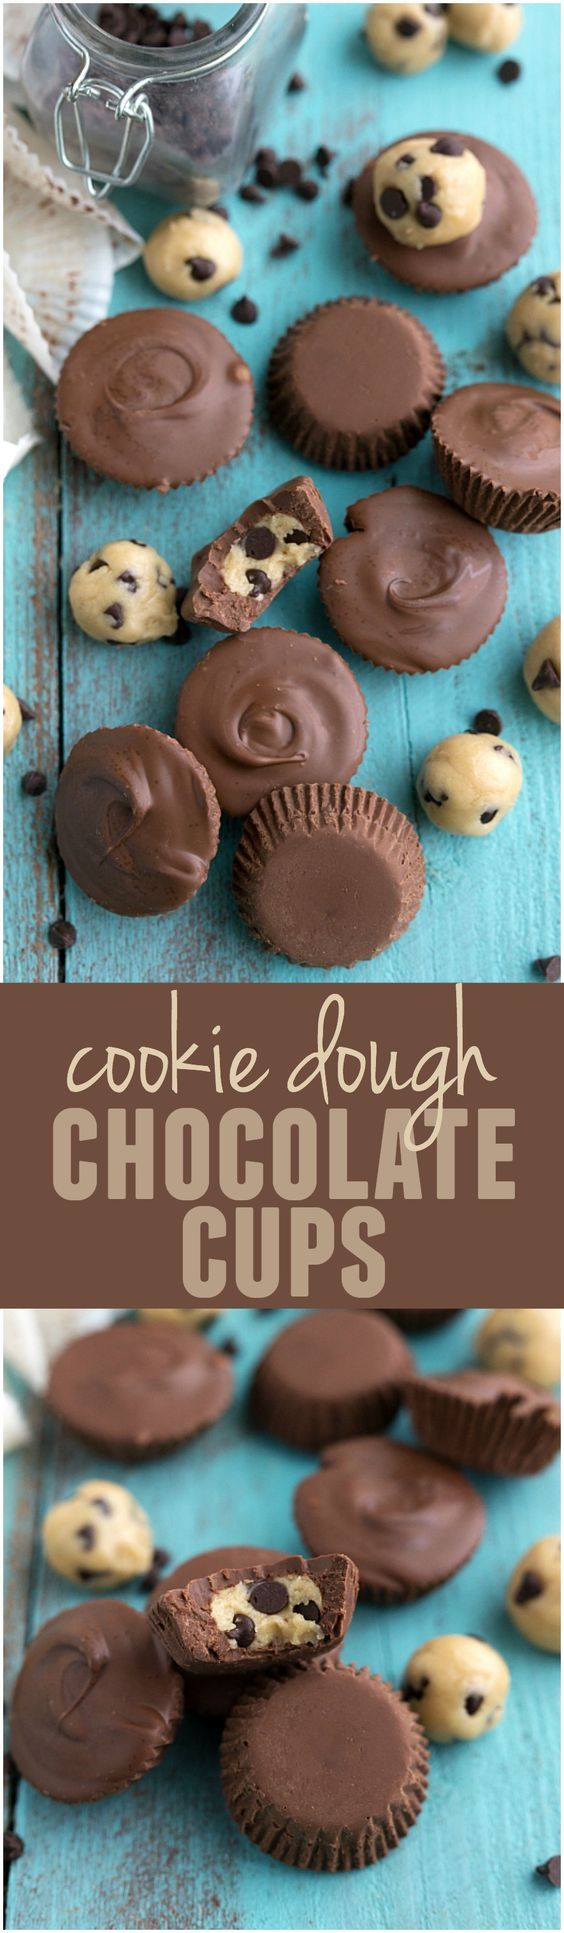 These Cookie Dough Chocolate Cups are NO BAKE and perfect if you love cookie dough!: